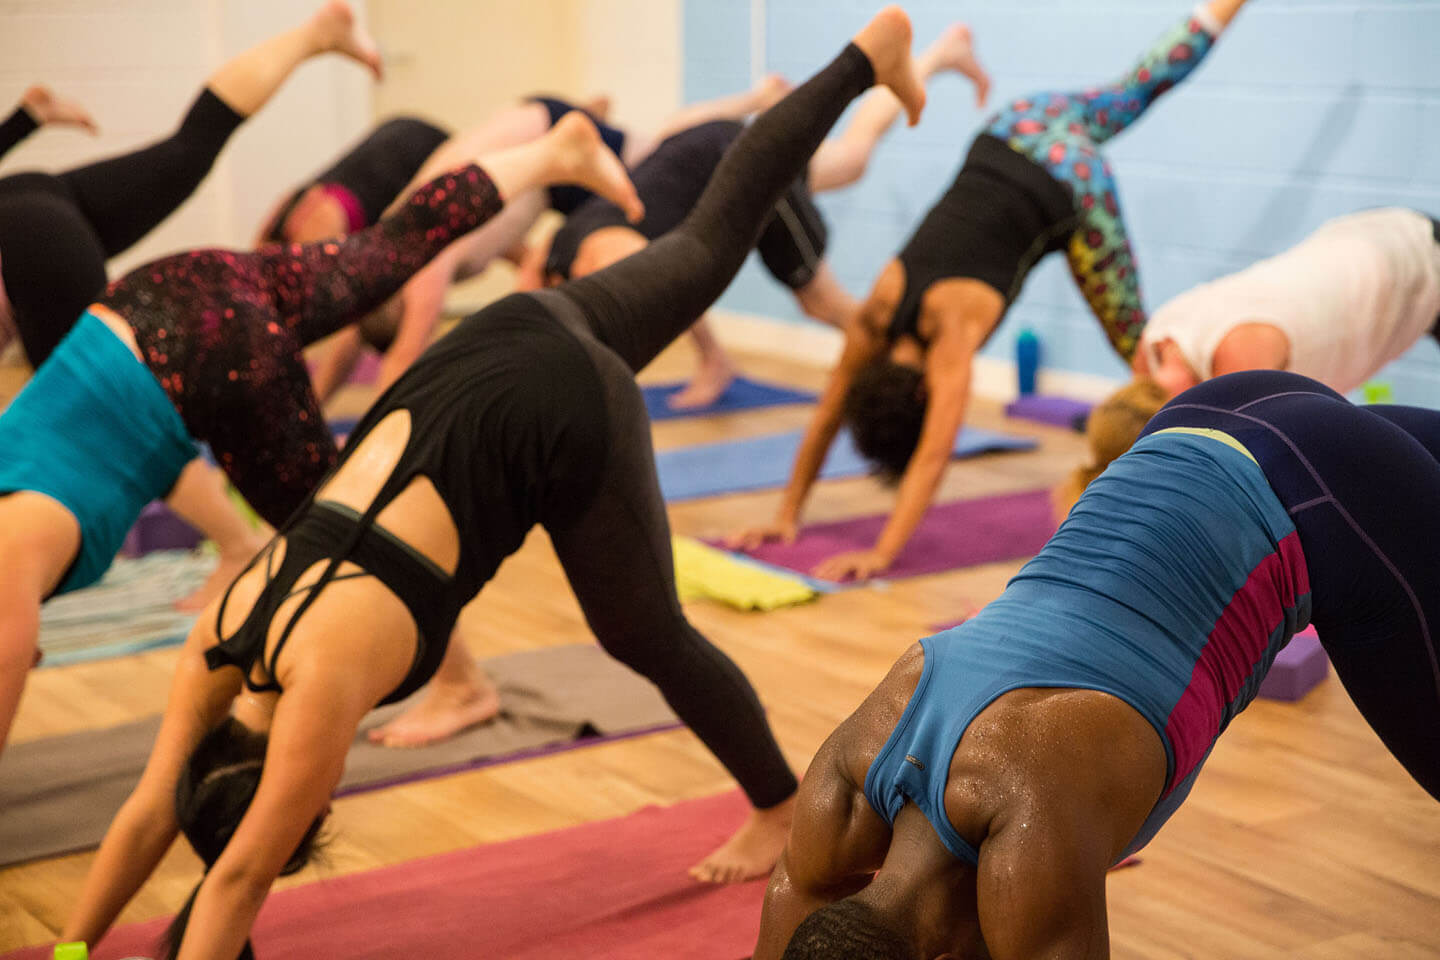 Why are more and more Yoga studios using Heat?